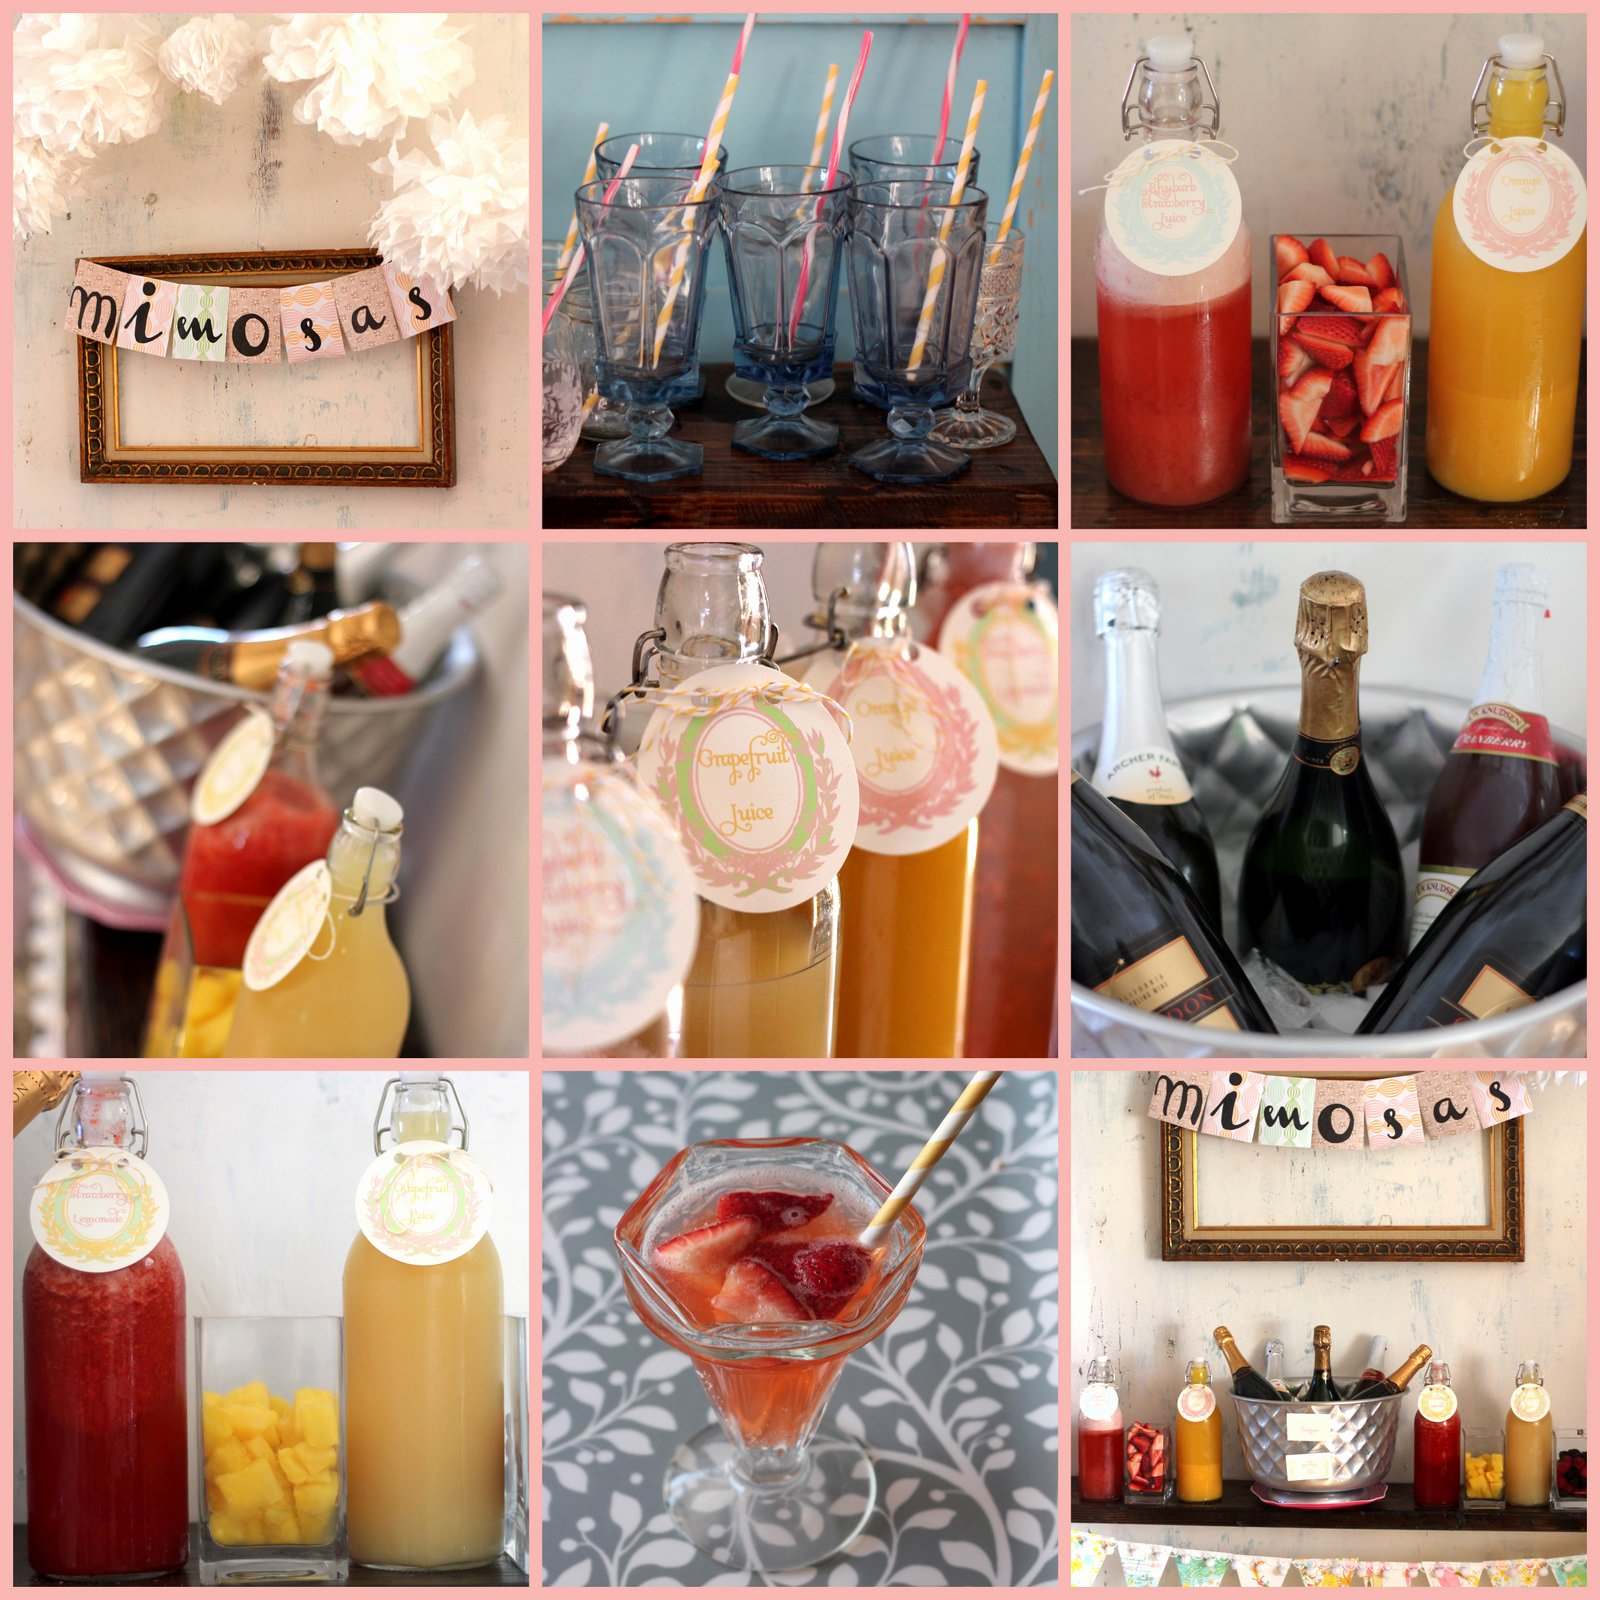 Baby Shower Shopping List Elegant Mimosa Bar How to and Shopping List